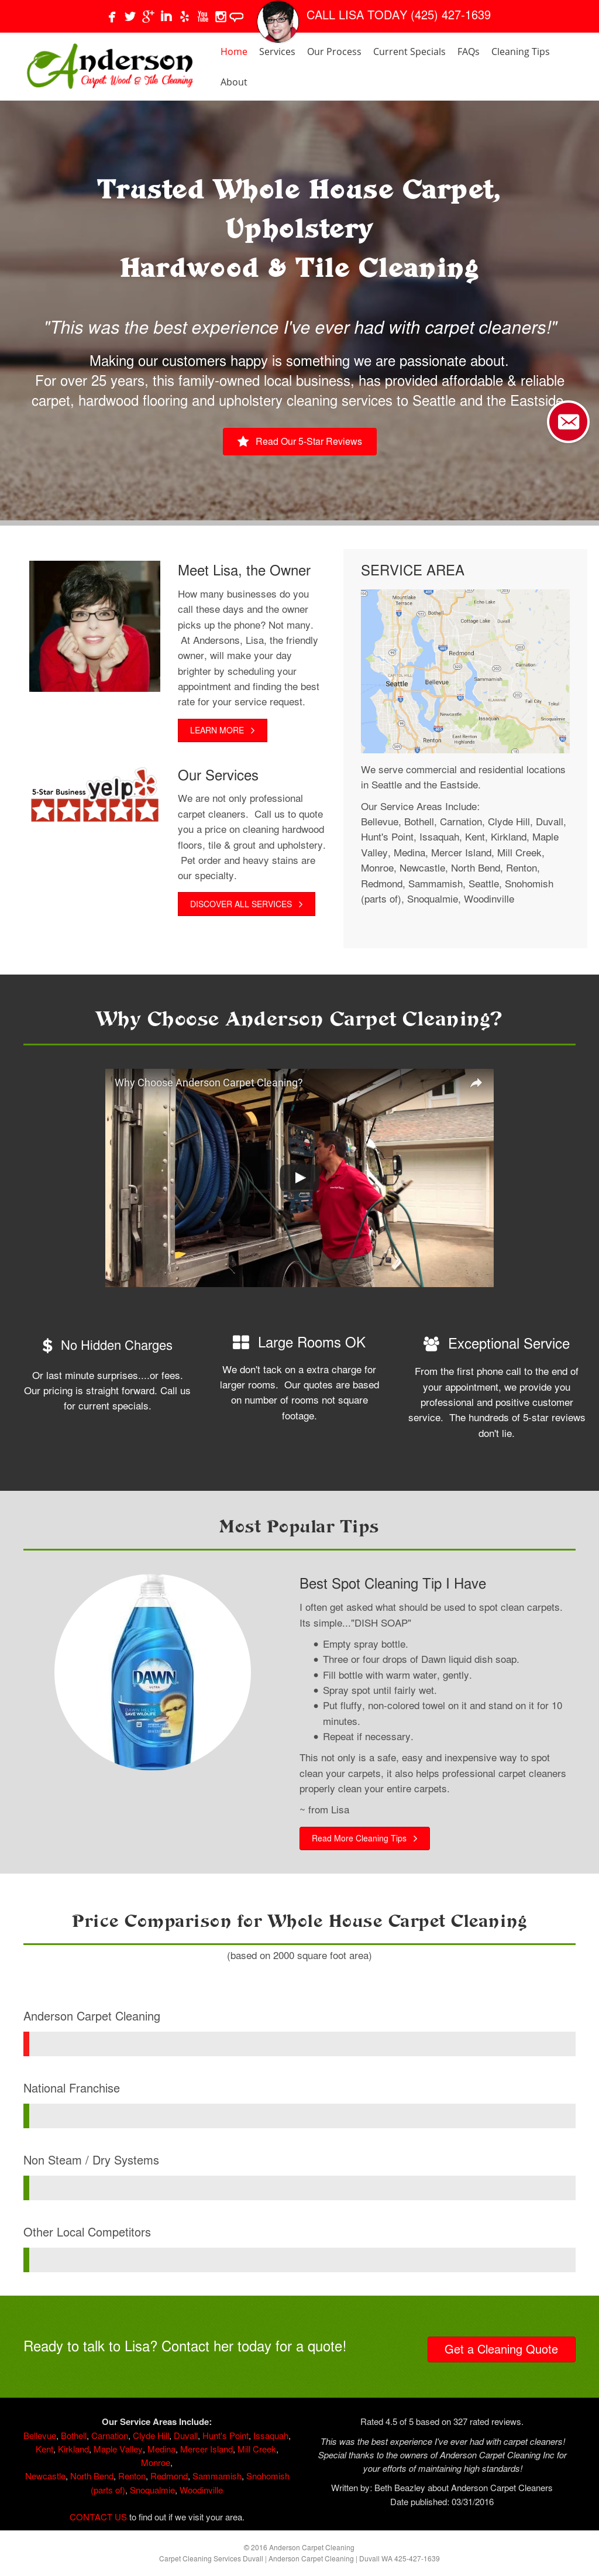 Anderson Carpet Cleaning Competitors Revenue And Employees